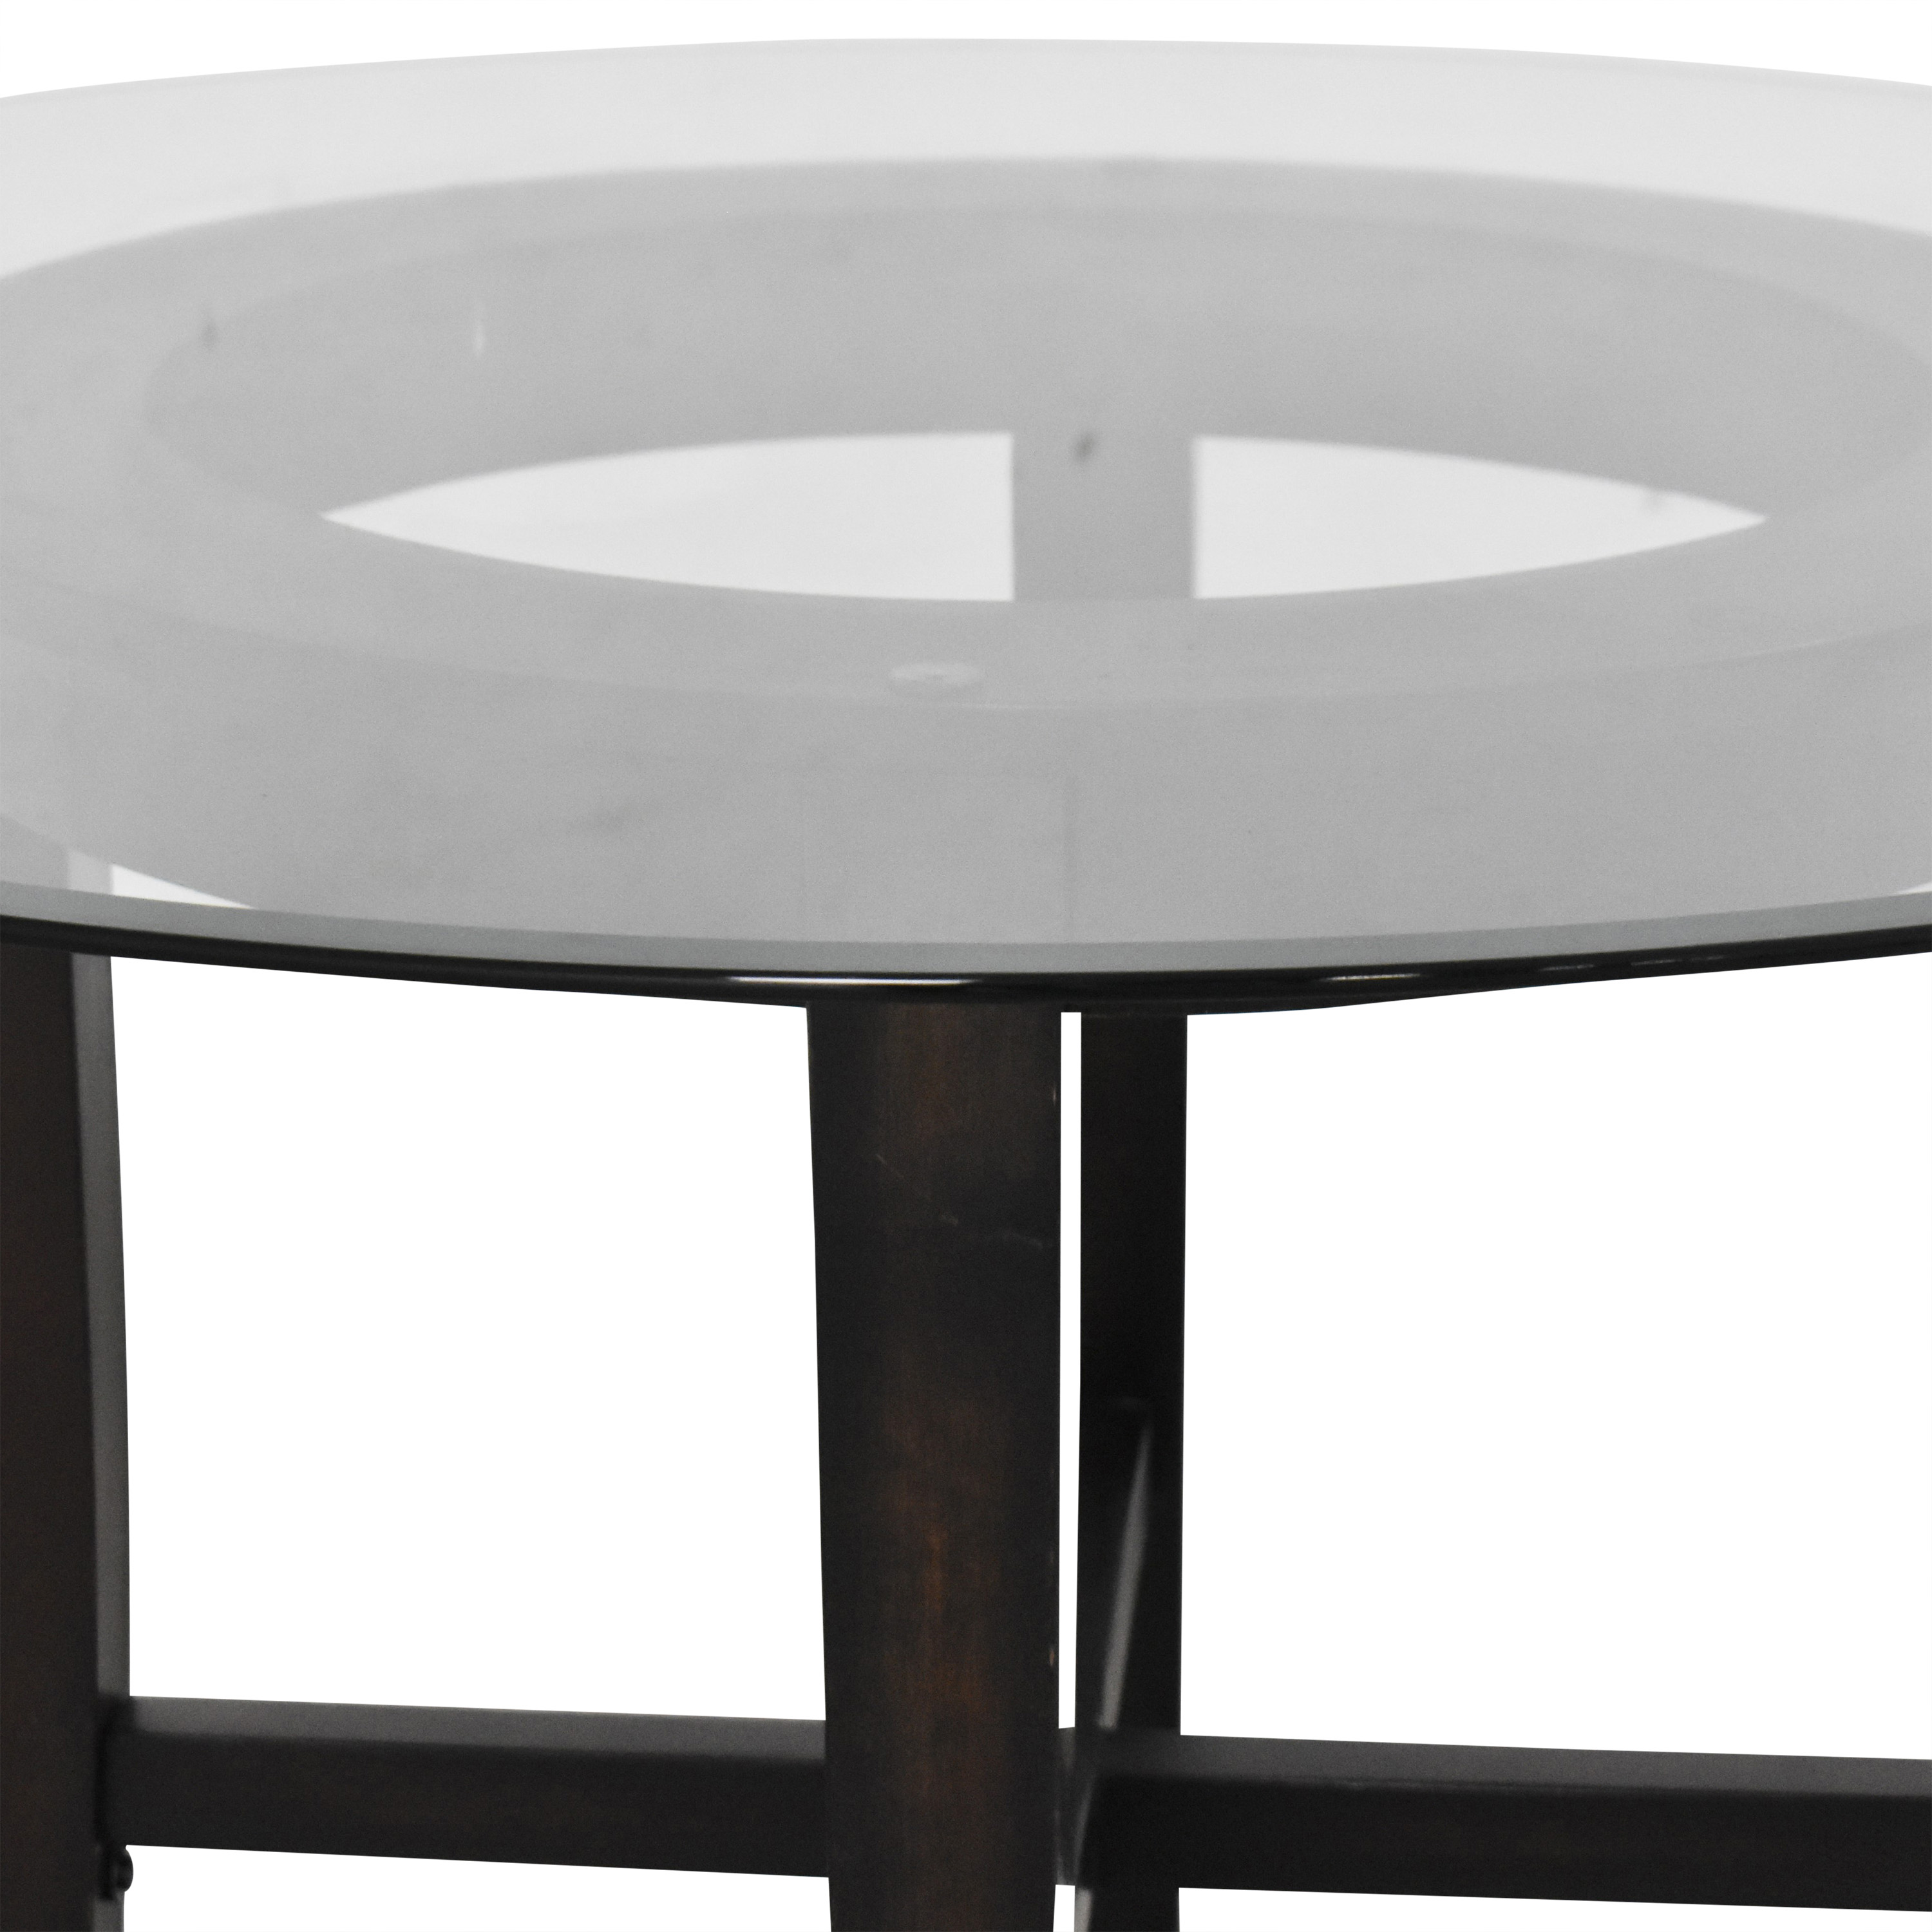 Ashley Furniture Ashley Furniture Zimmer Round Dining Table ct